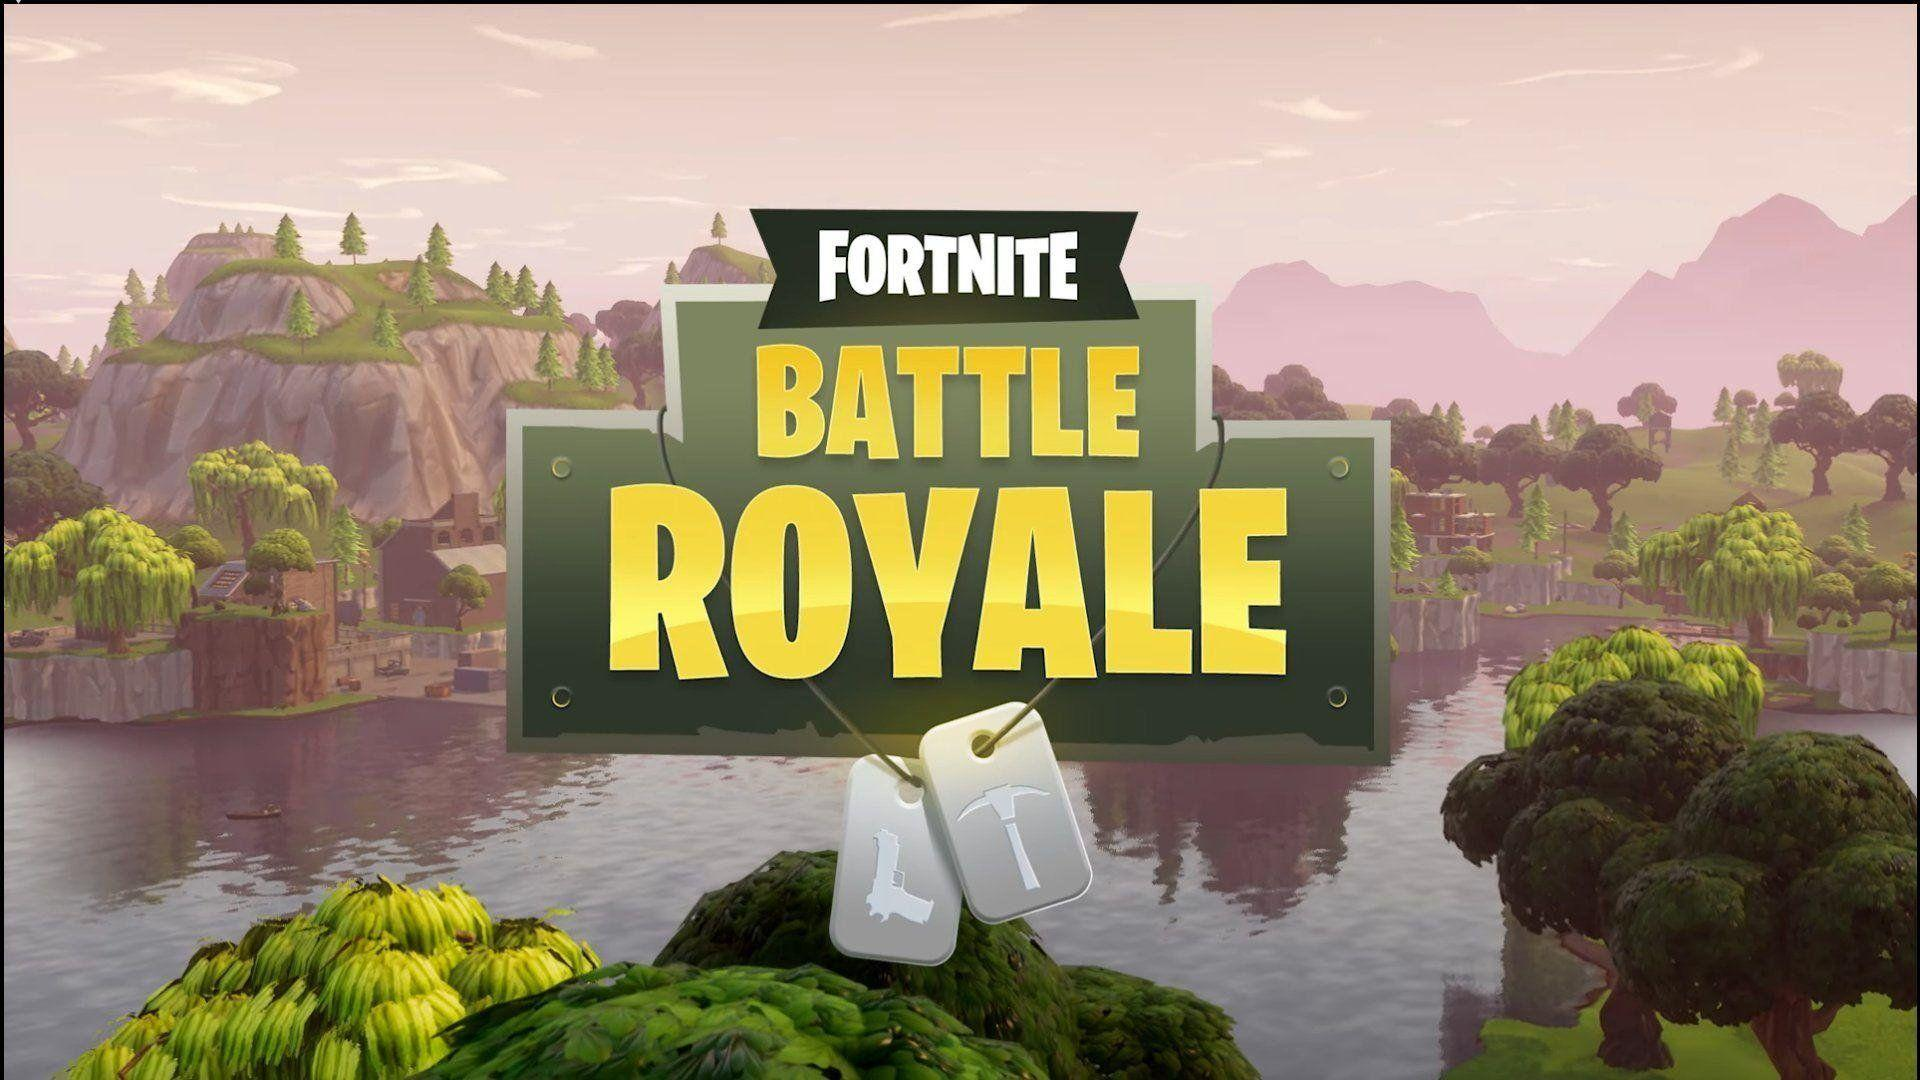 Game Screen Fortnite Battle Royale Wallpapers for Phone and HD